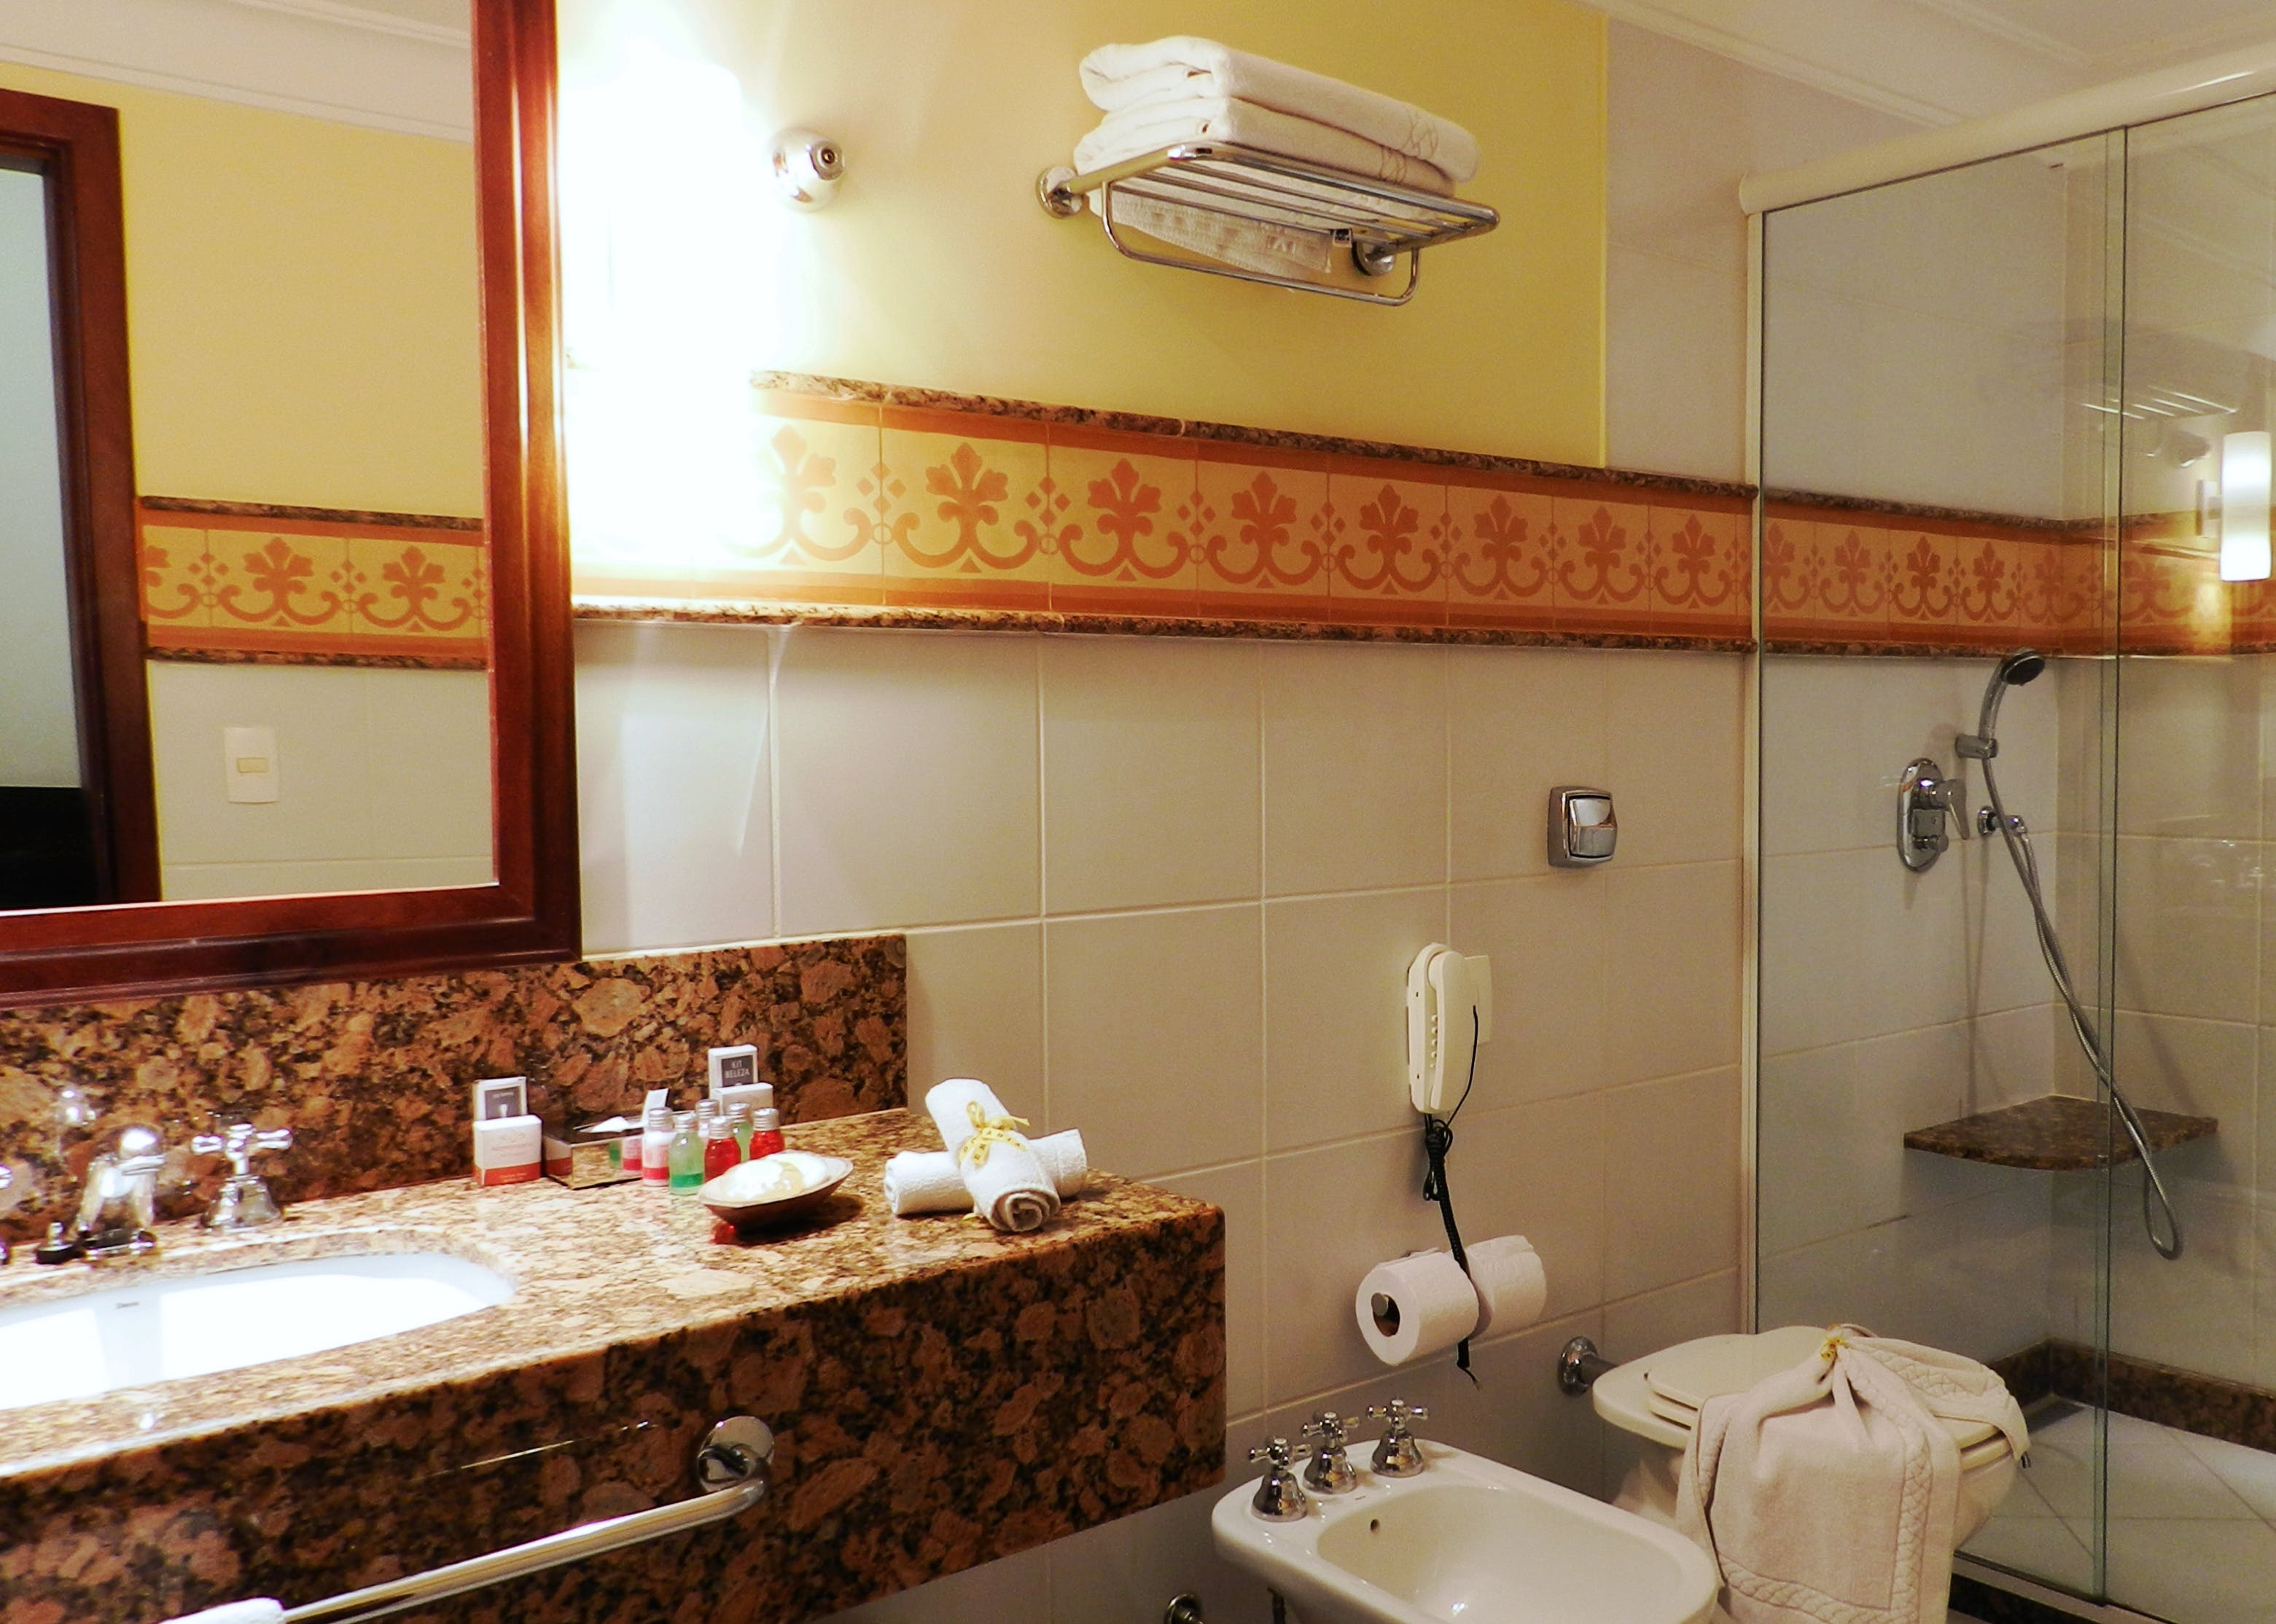 Hotel Casa Amarelindo Superior Room bathroom Sink